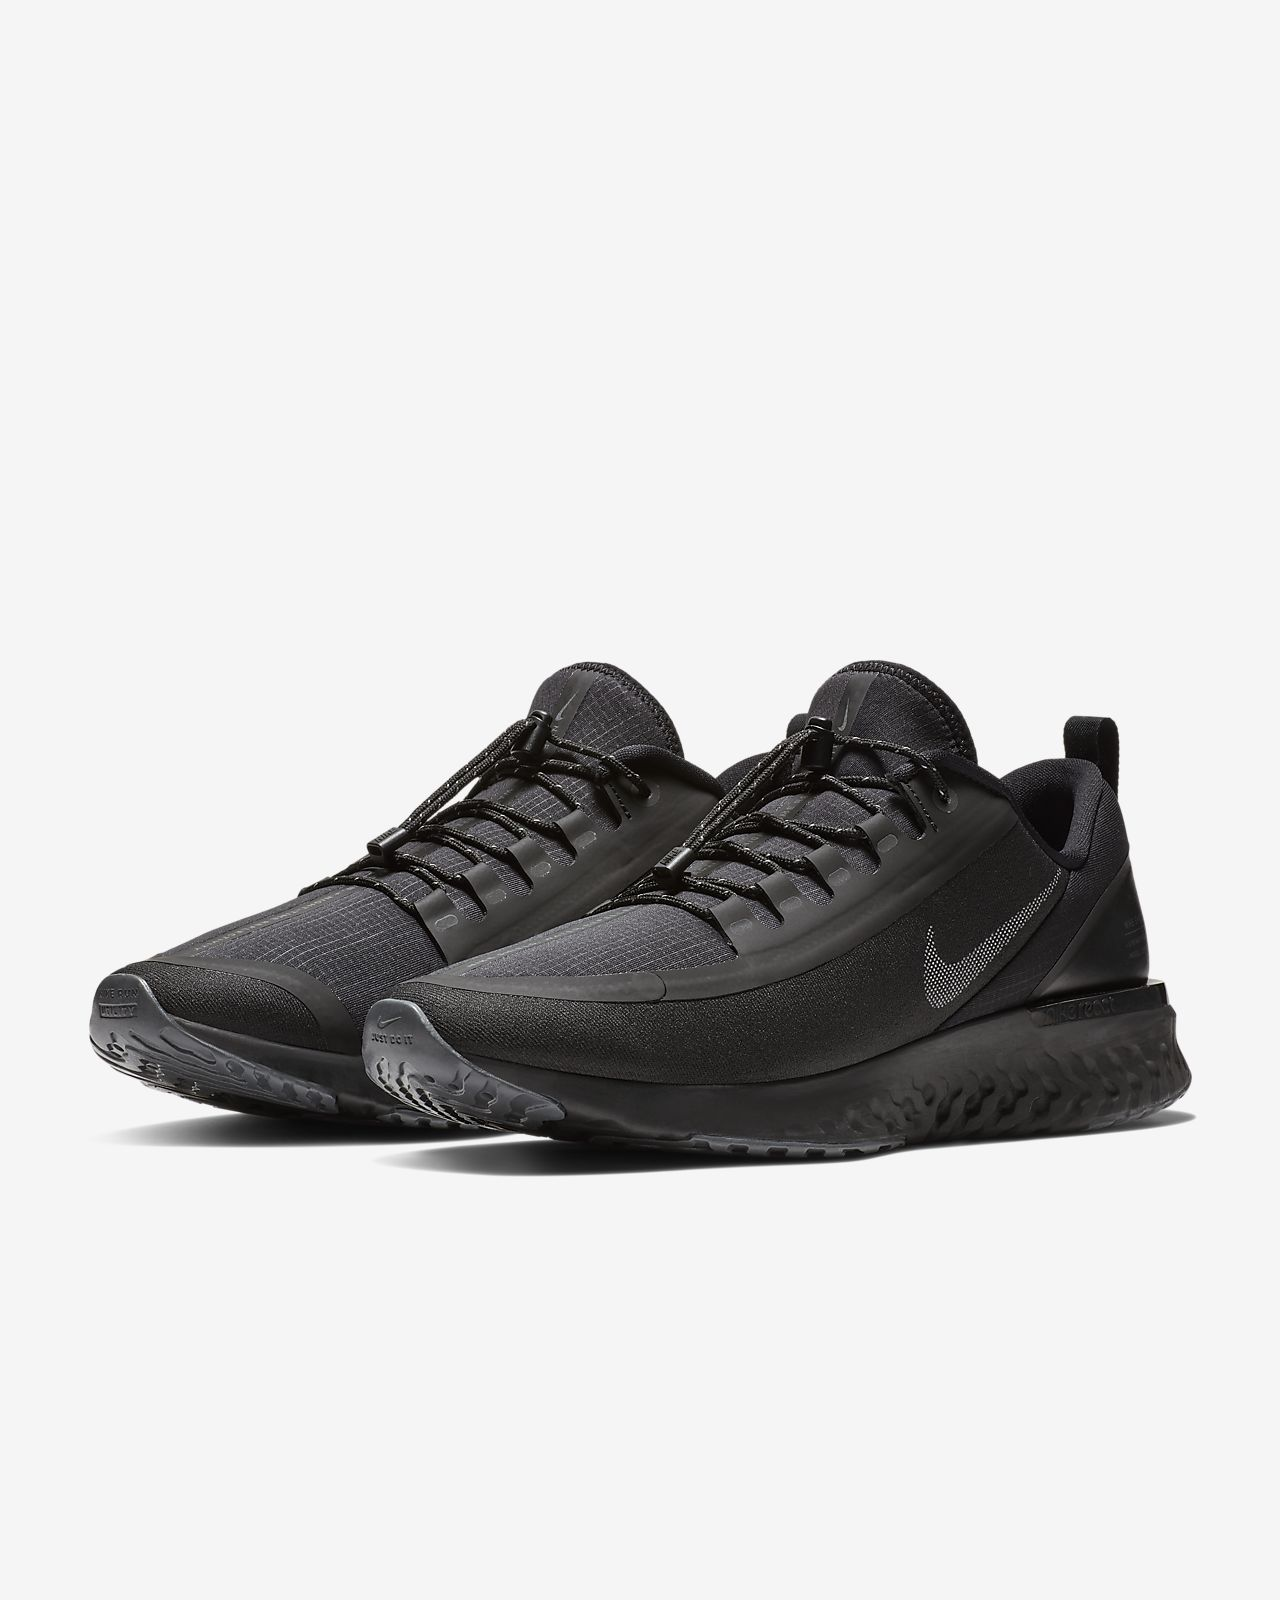 469f1ac709dc1f Nike Odyssey React Shield Water-Repellent Men s Running Shoe. Nike ...